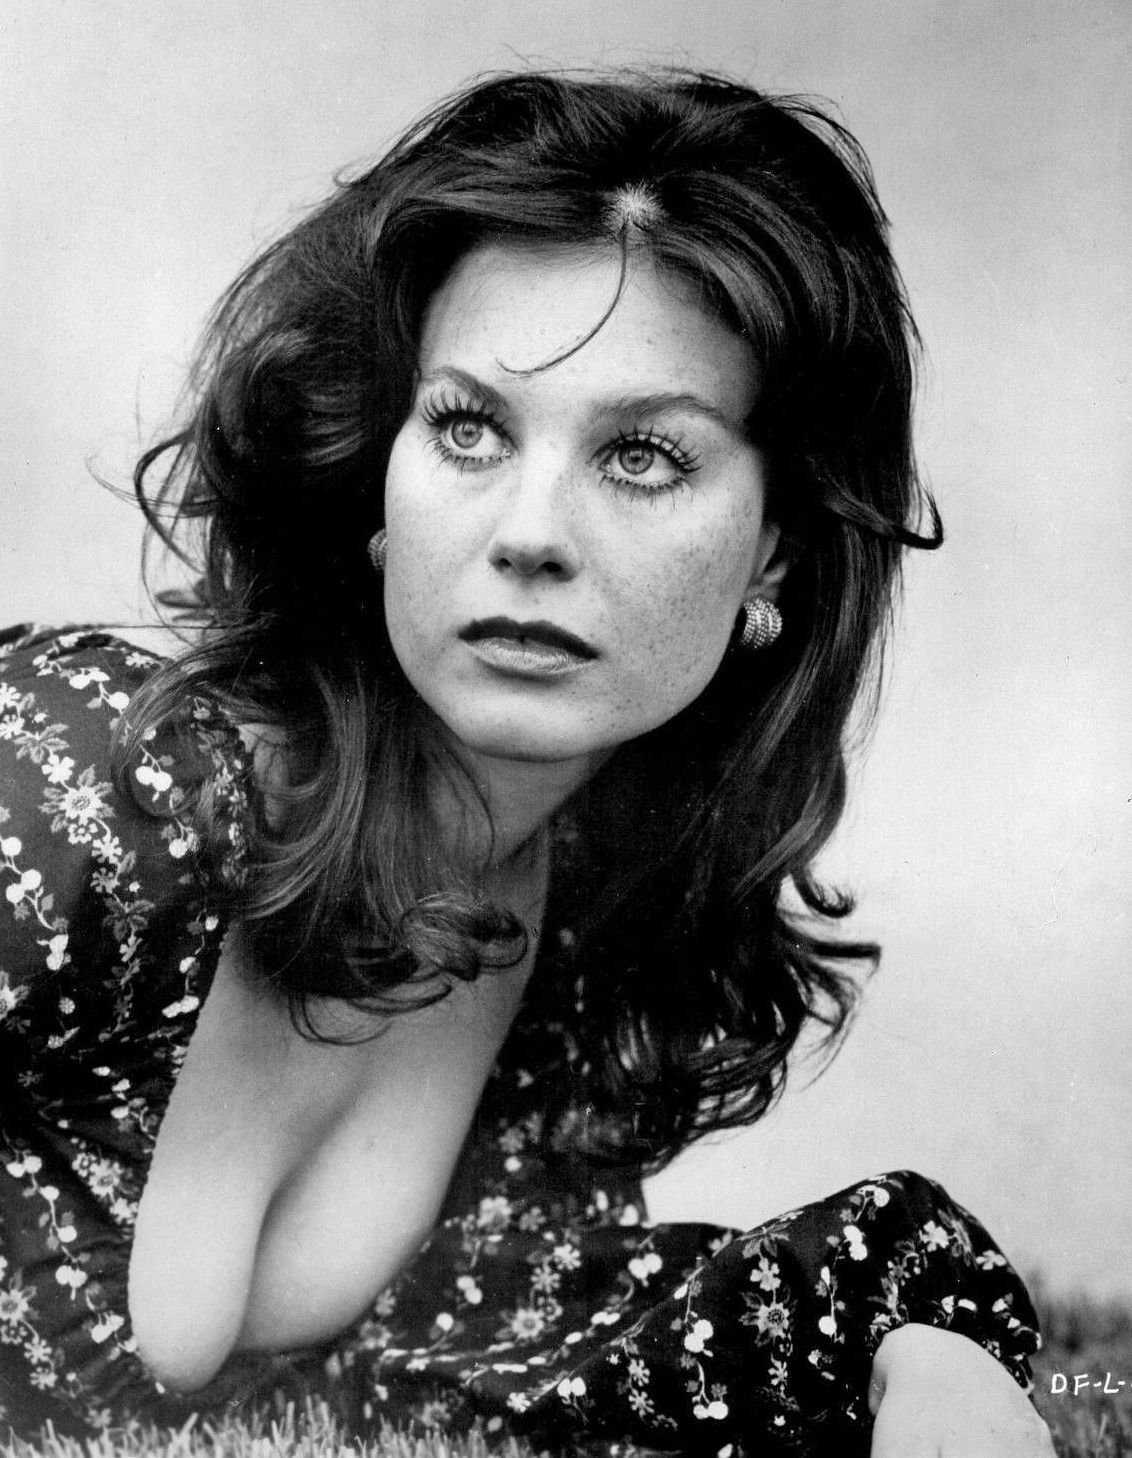 How tall is Lana Wood?